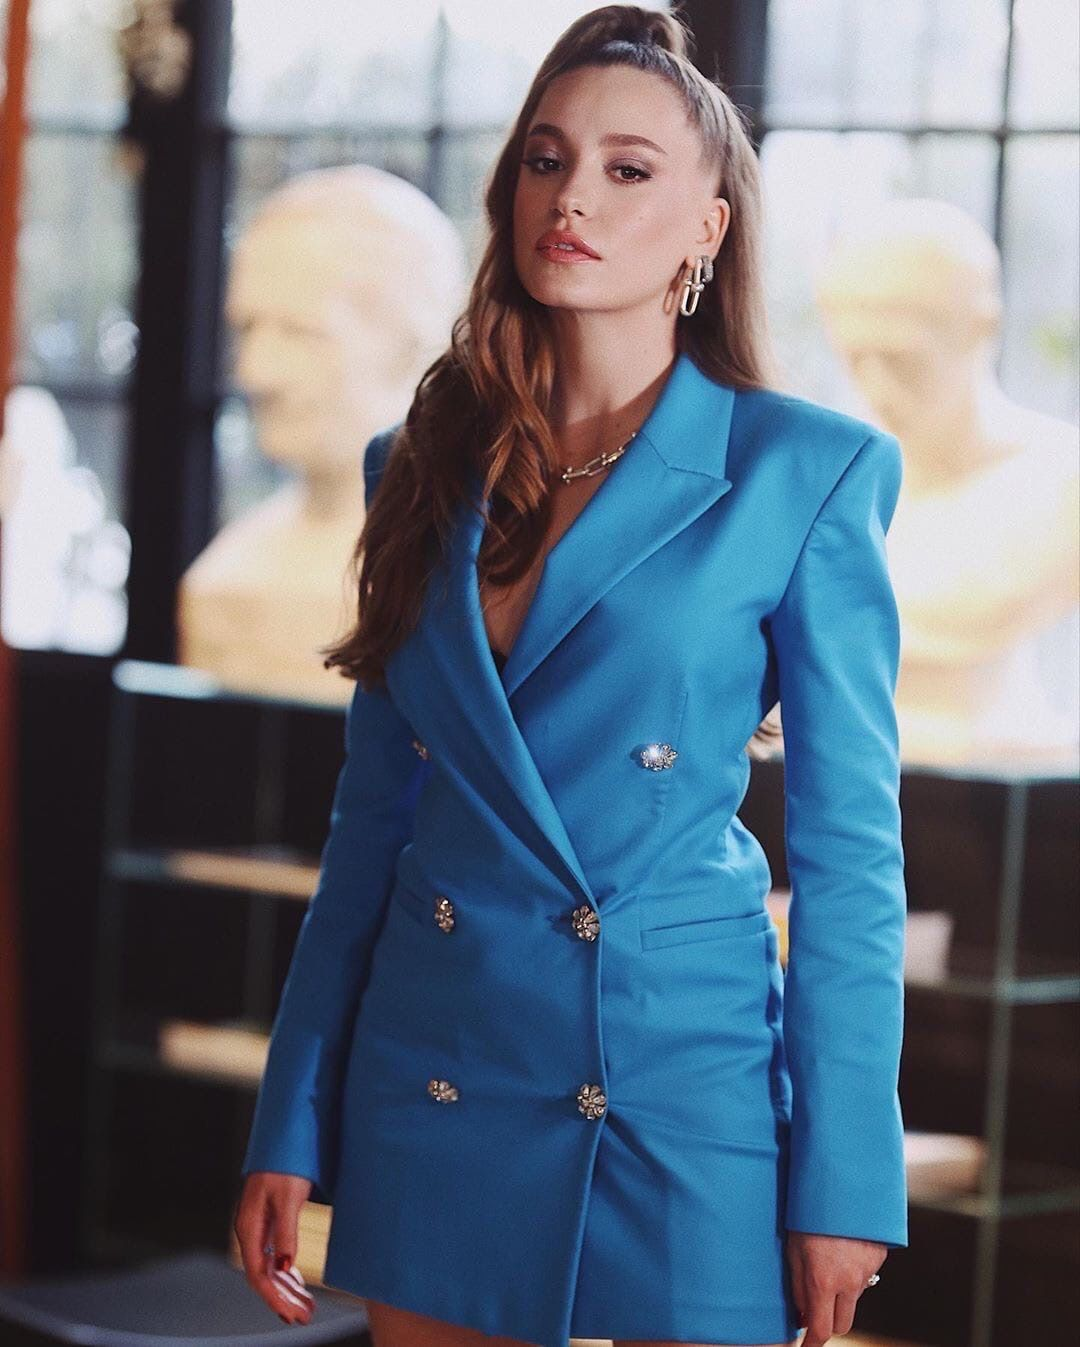 Serenay Sarikaya Fashion Outfits Double Breasted Suit Jacket